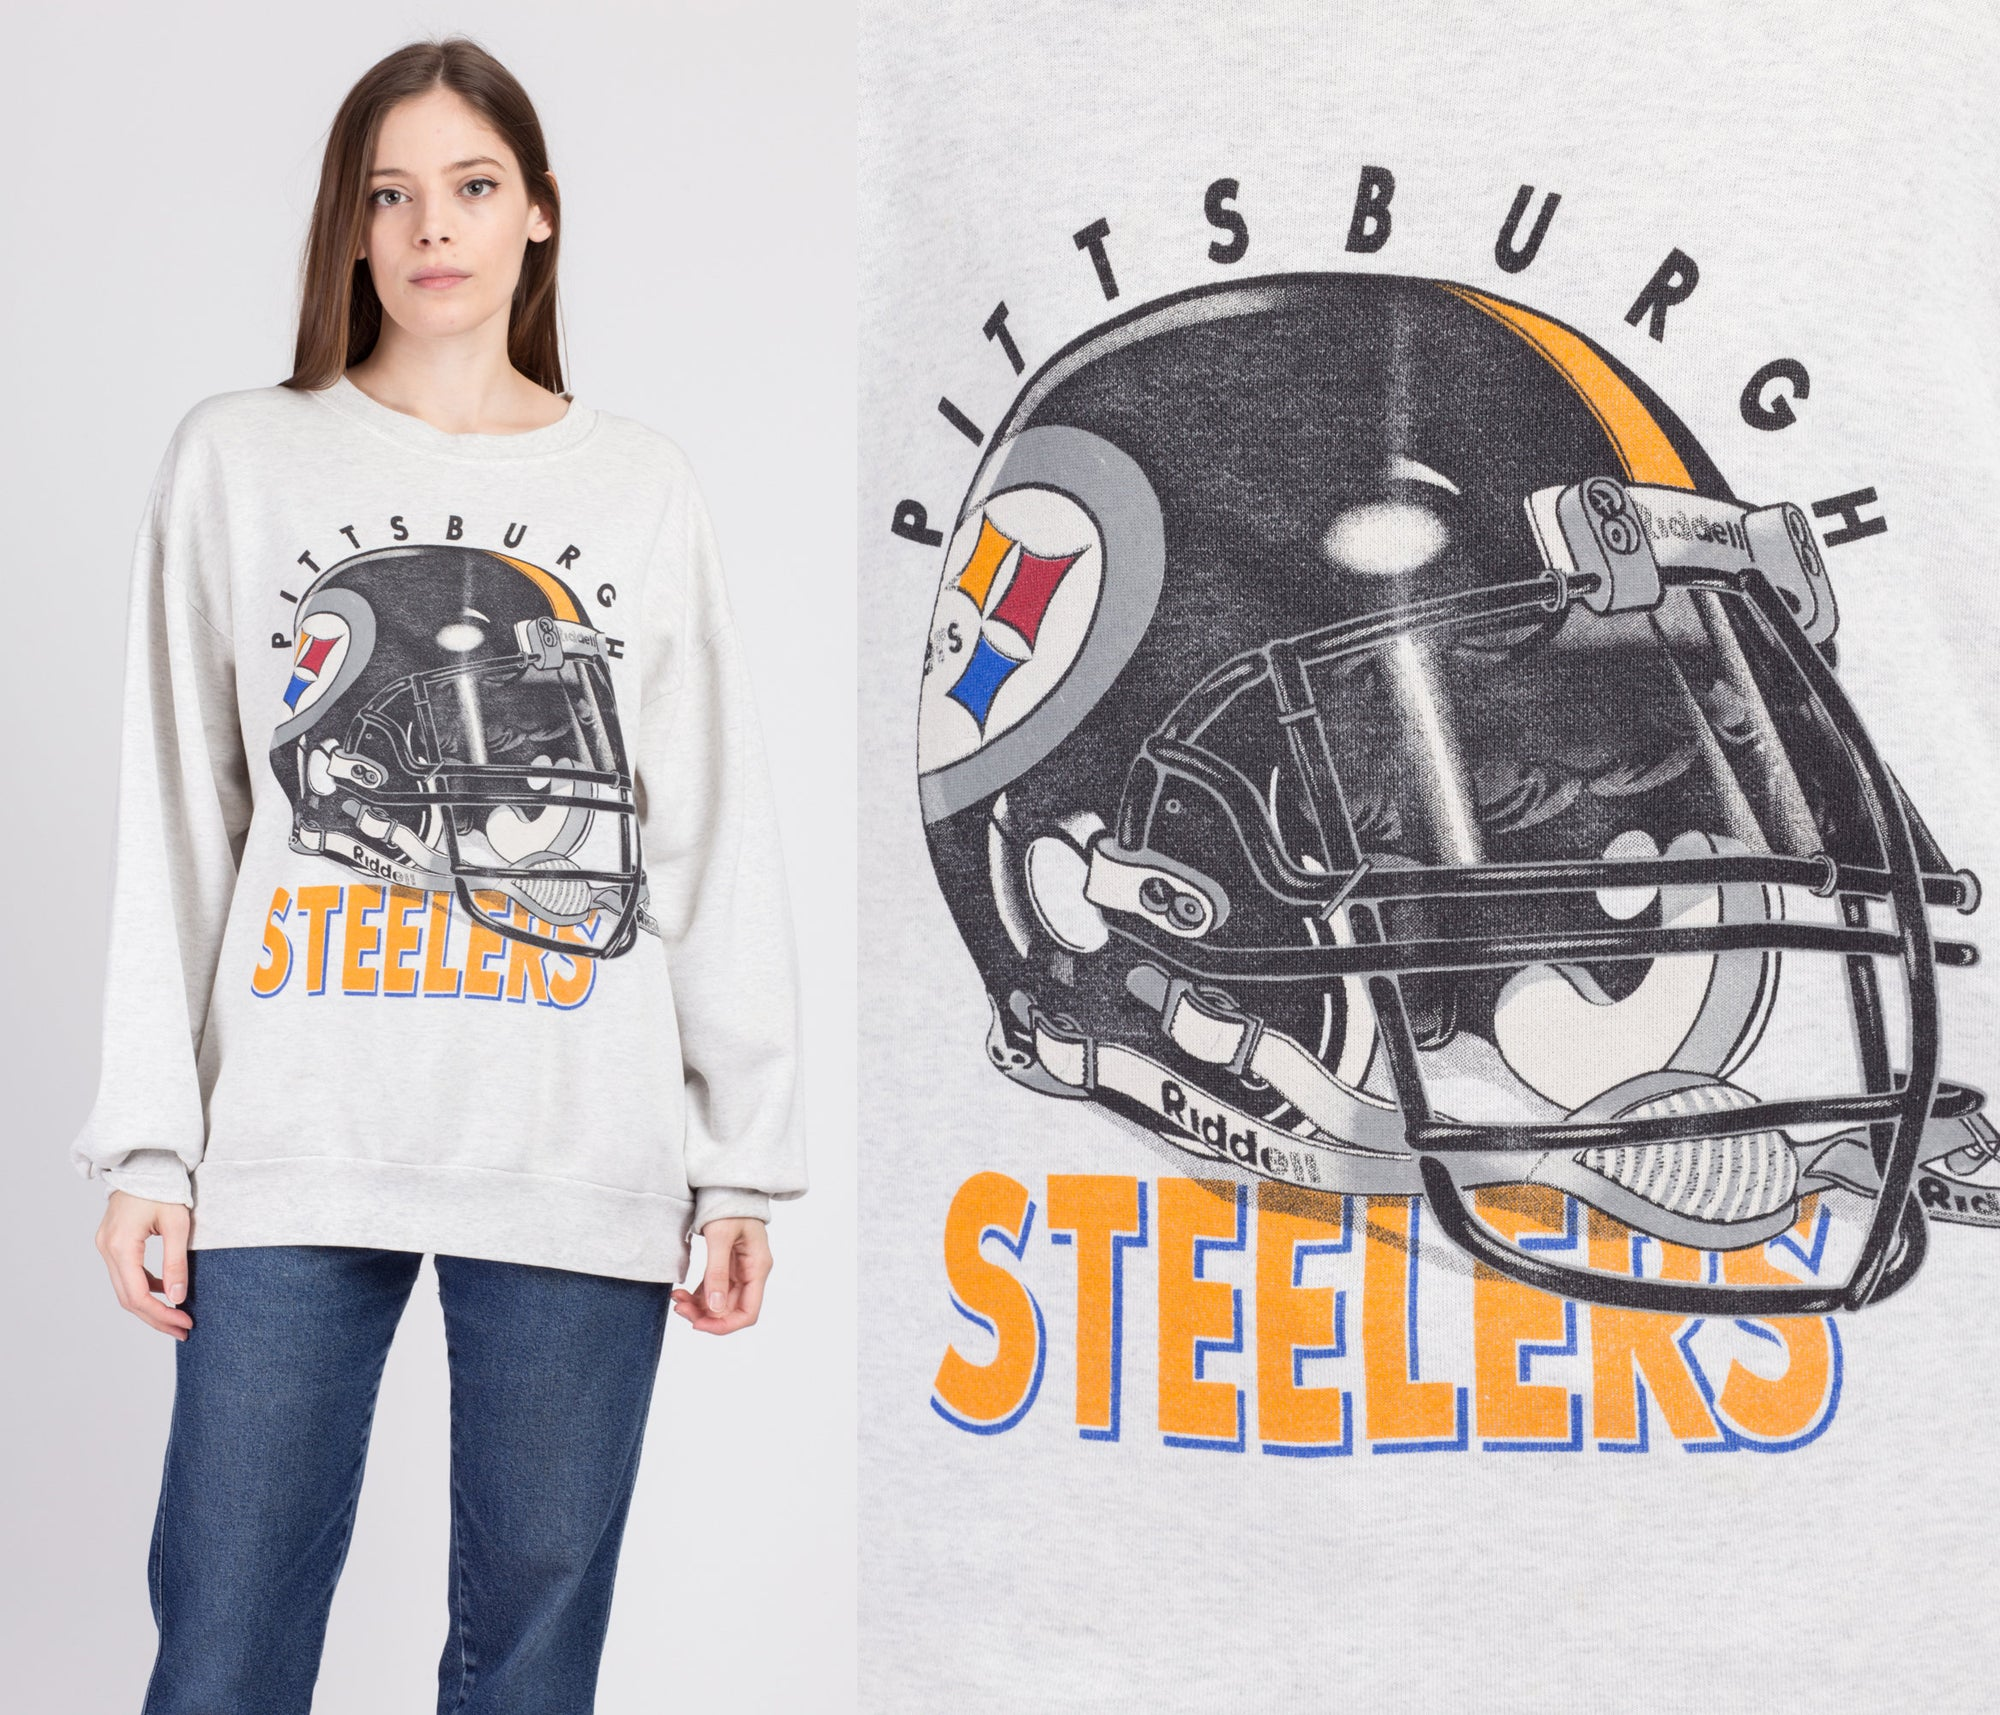 90s Pittsburgh Steelers Sweatshirt - Men's XL